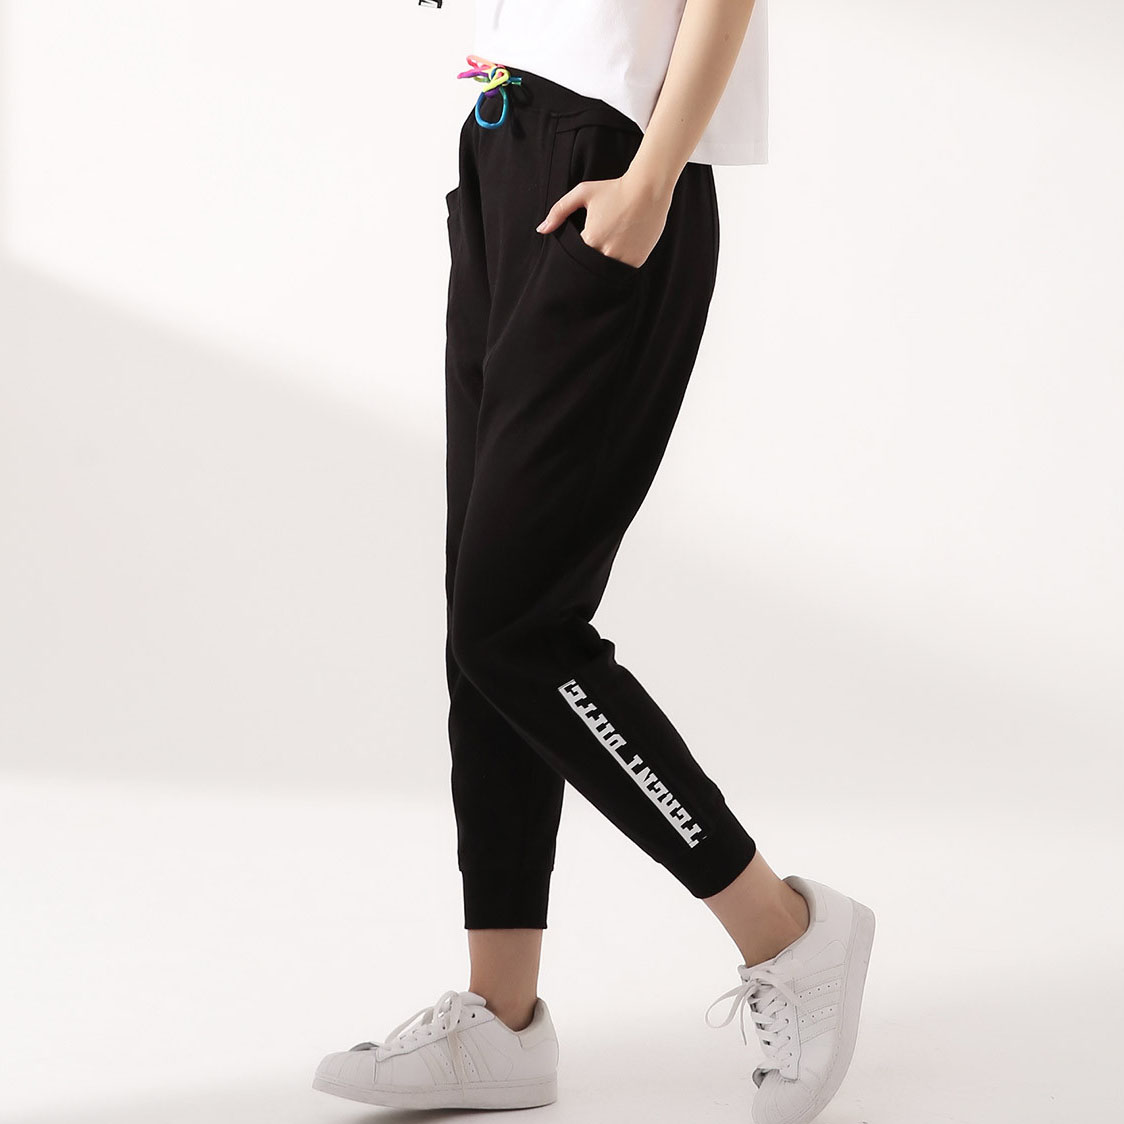 french terry pants new pants design for girl long track pants